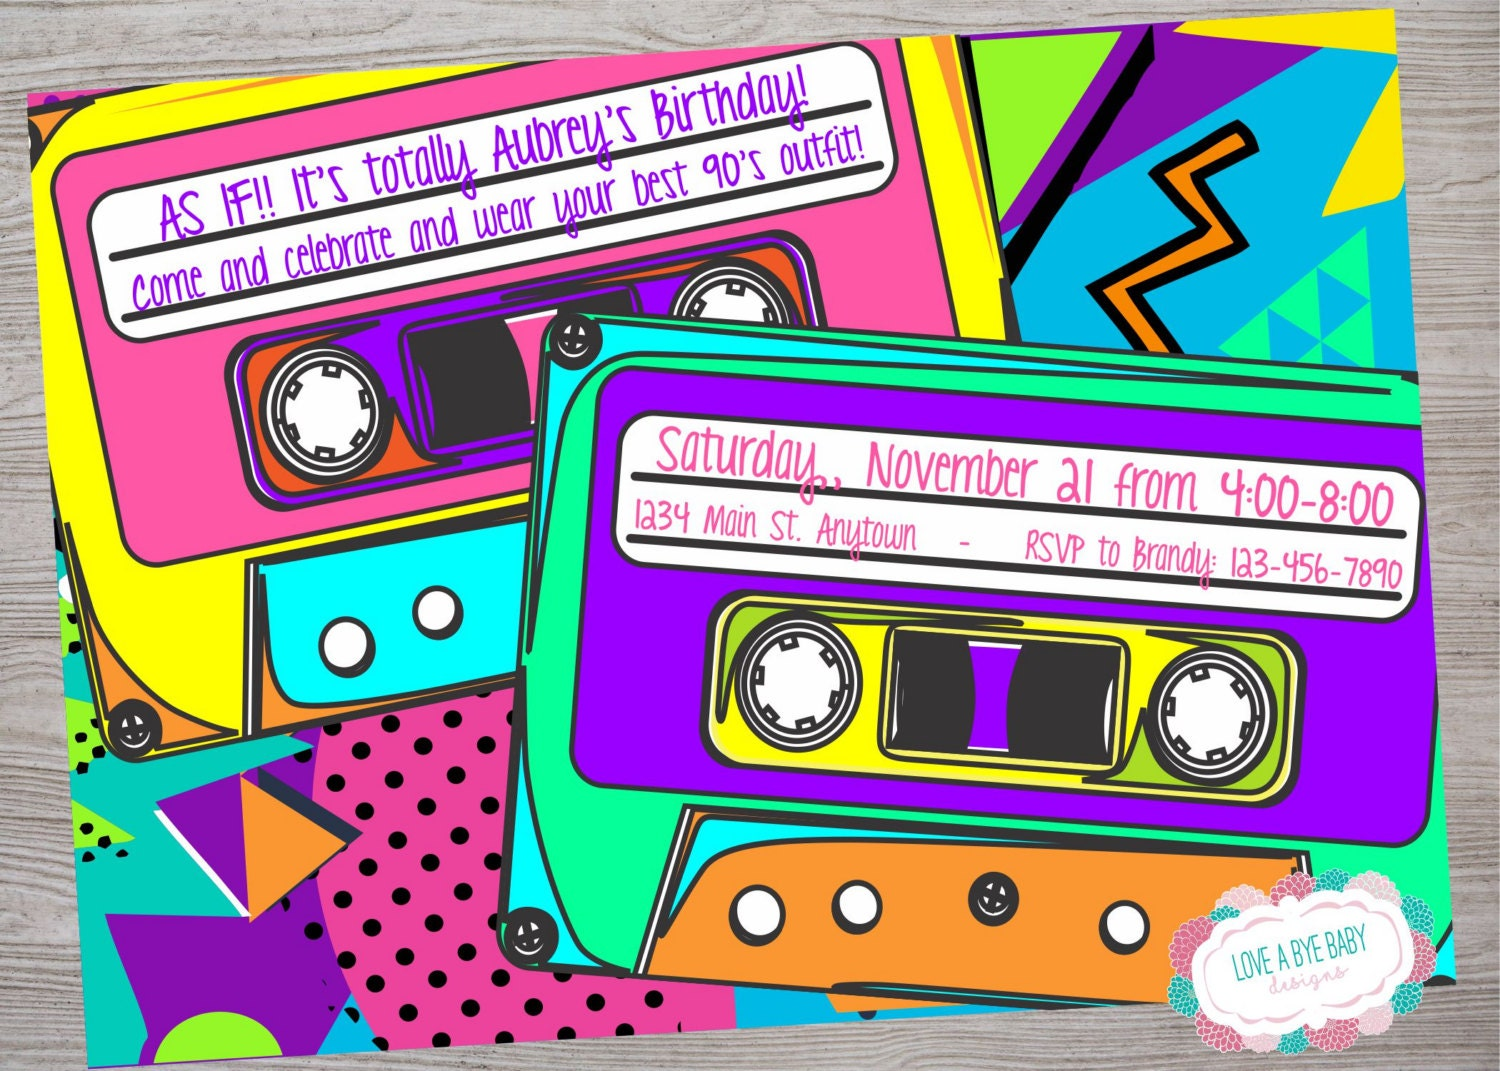 90S Theme Party Invitations - Amazing Invitation Template Design ...